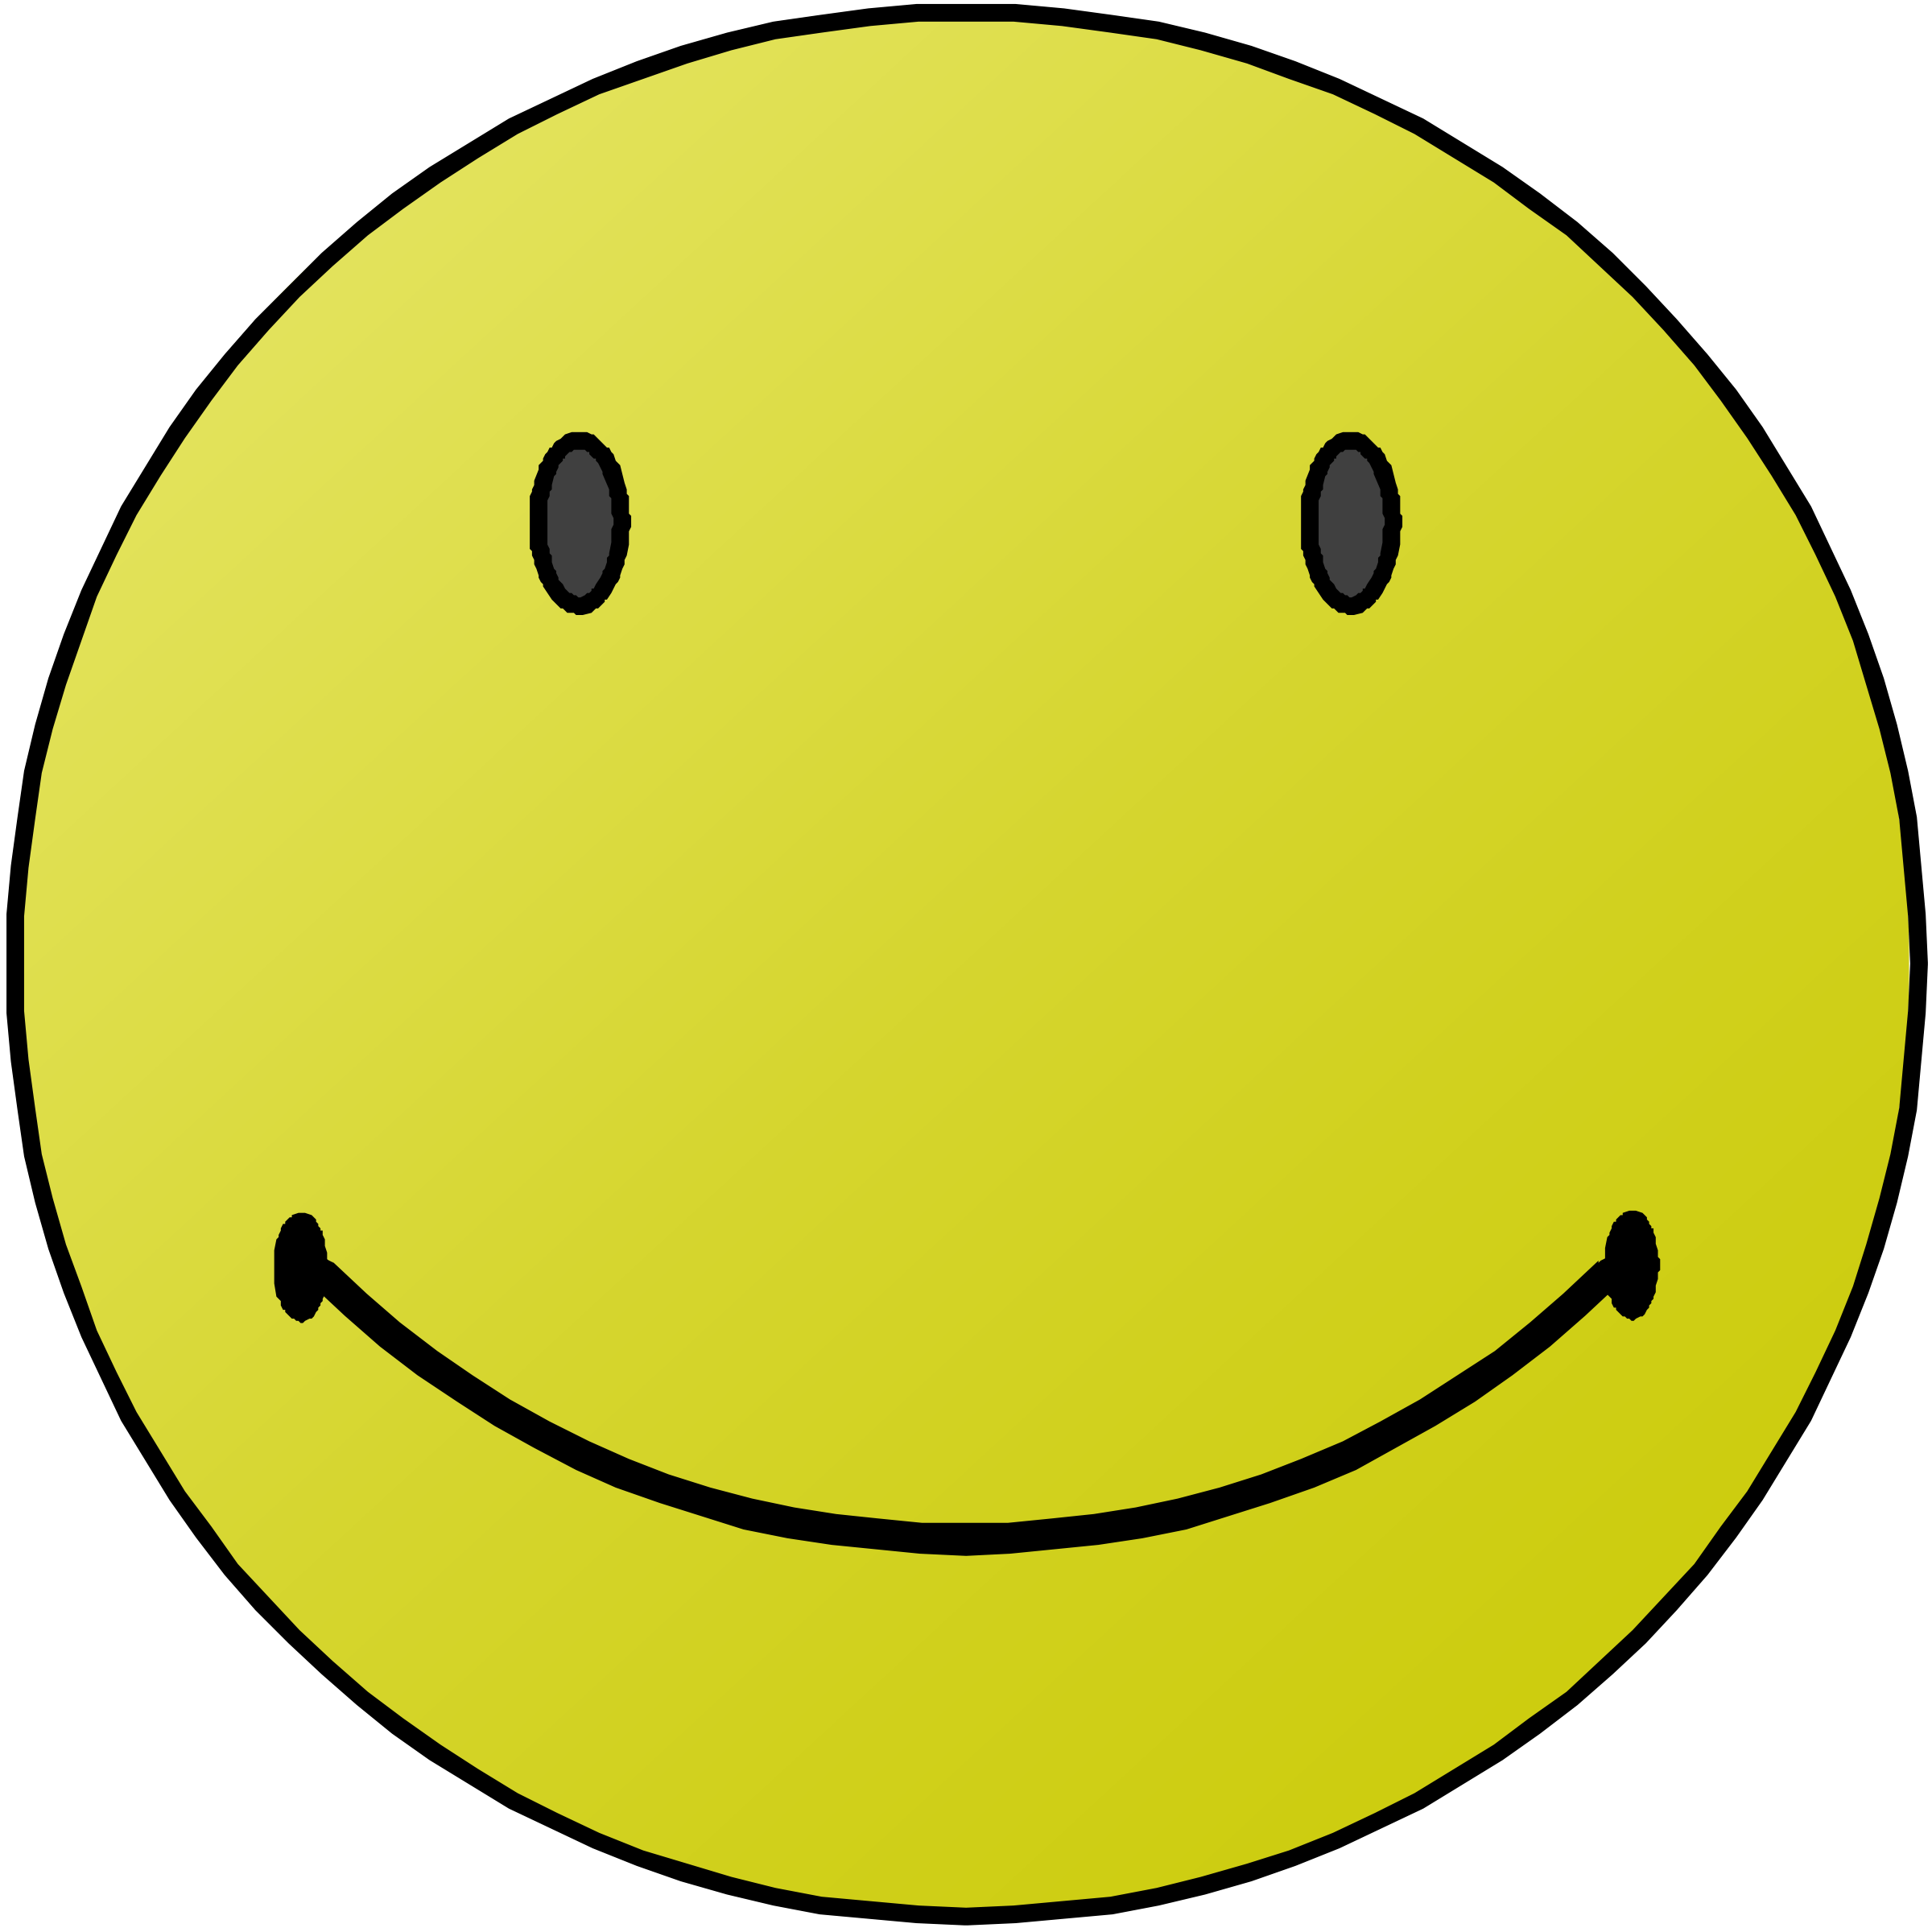 2400x2400 Smiley Face Clip Art Free Clipart Images